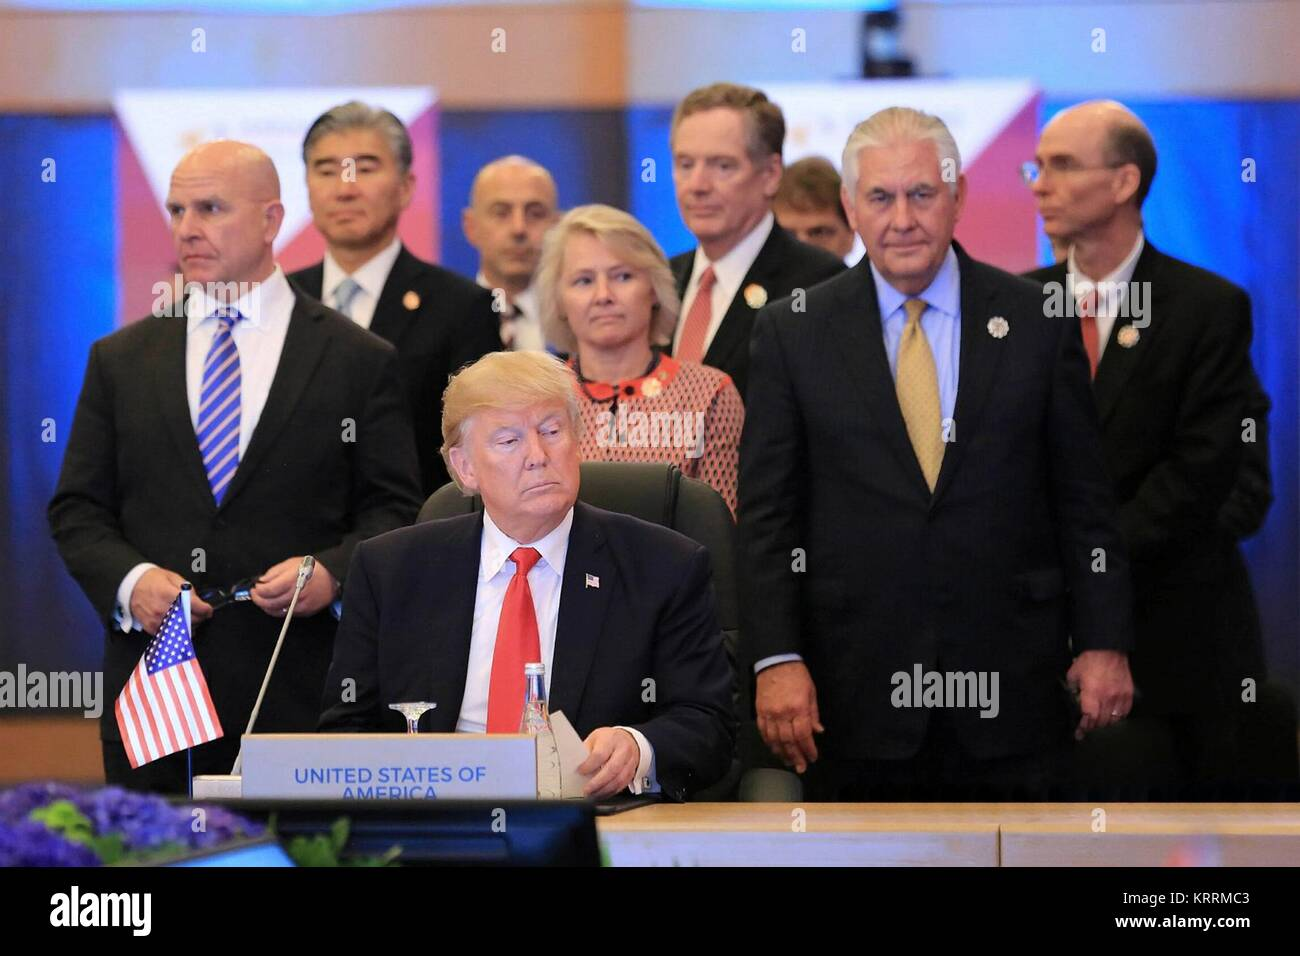 U.S. President Donald Trump attends the 5th Association of Southeast Asian Nations (ASEAN)-U.S. Commemorative Summit - Stock Image